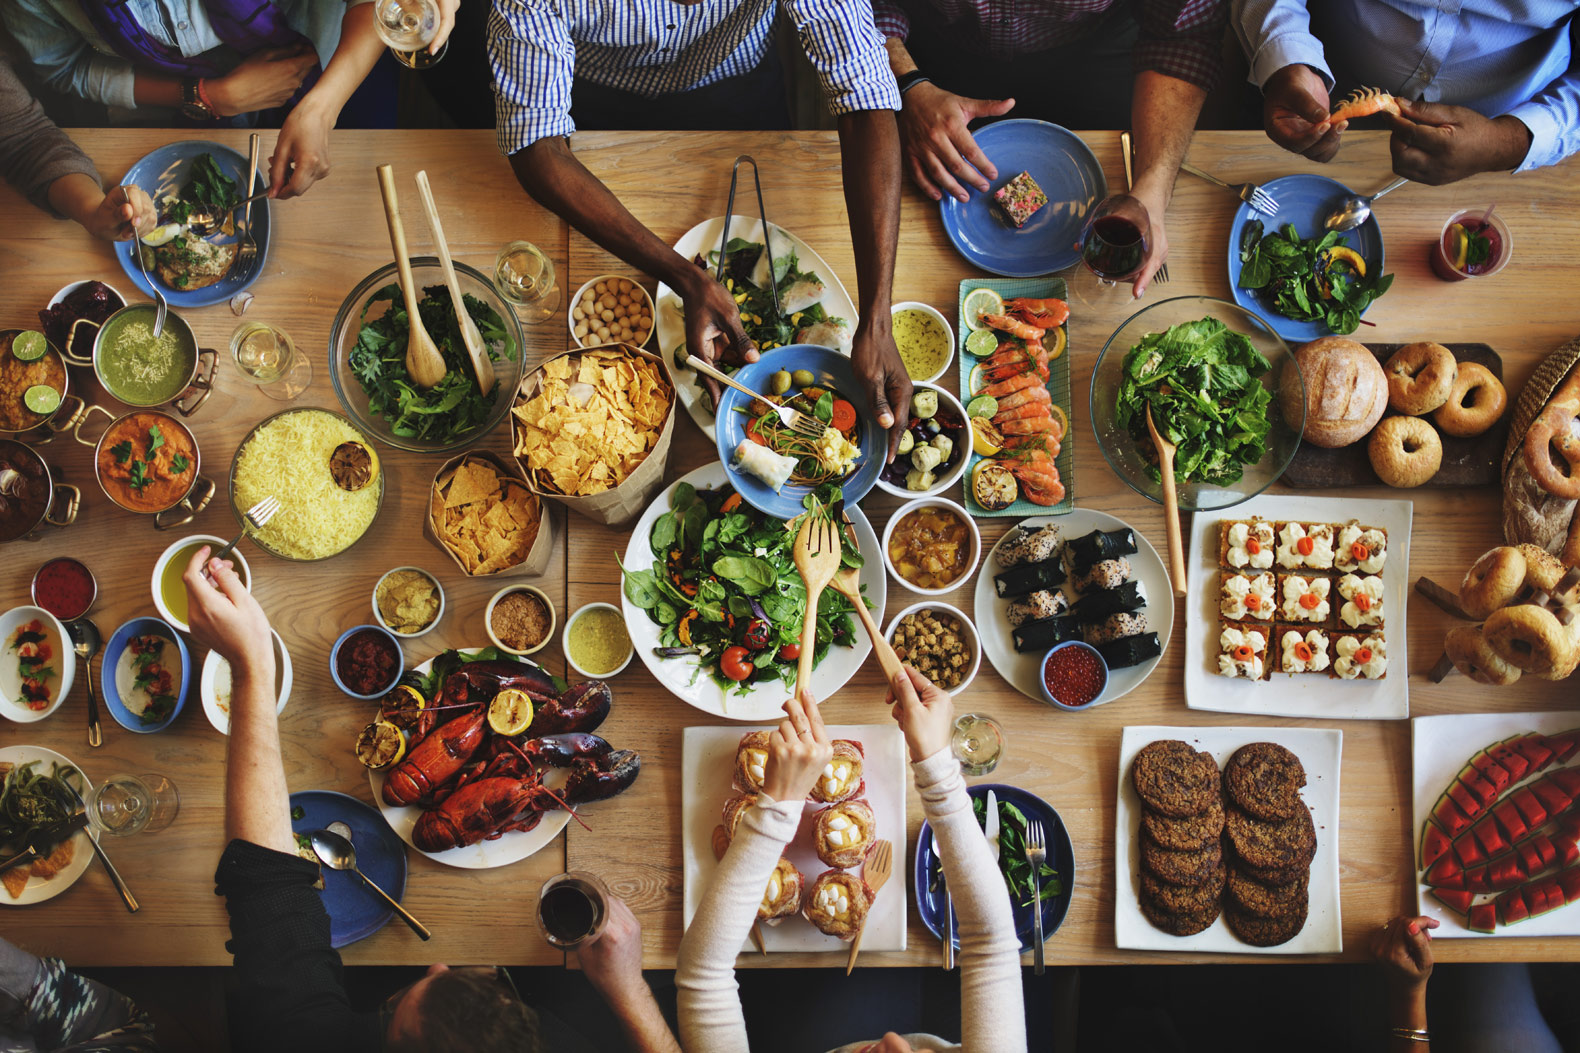 6 tips to reduce your foodprint while dining out